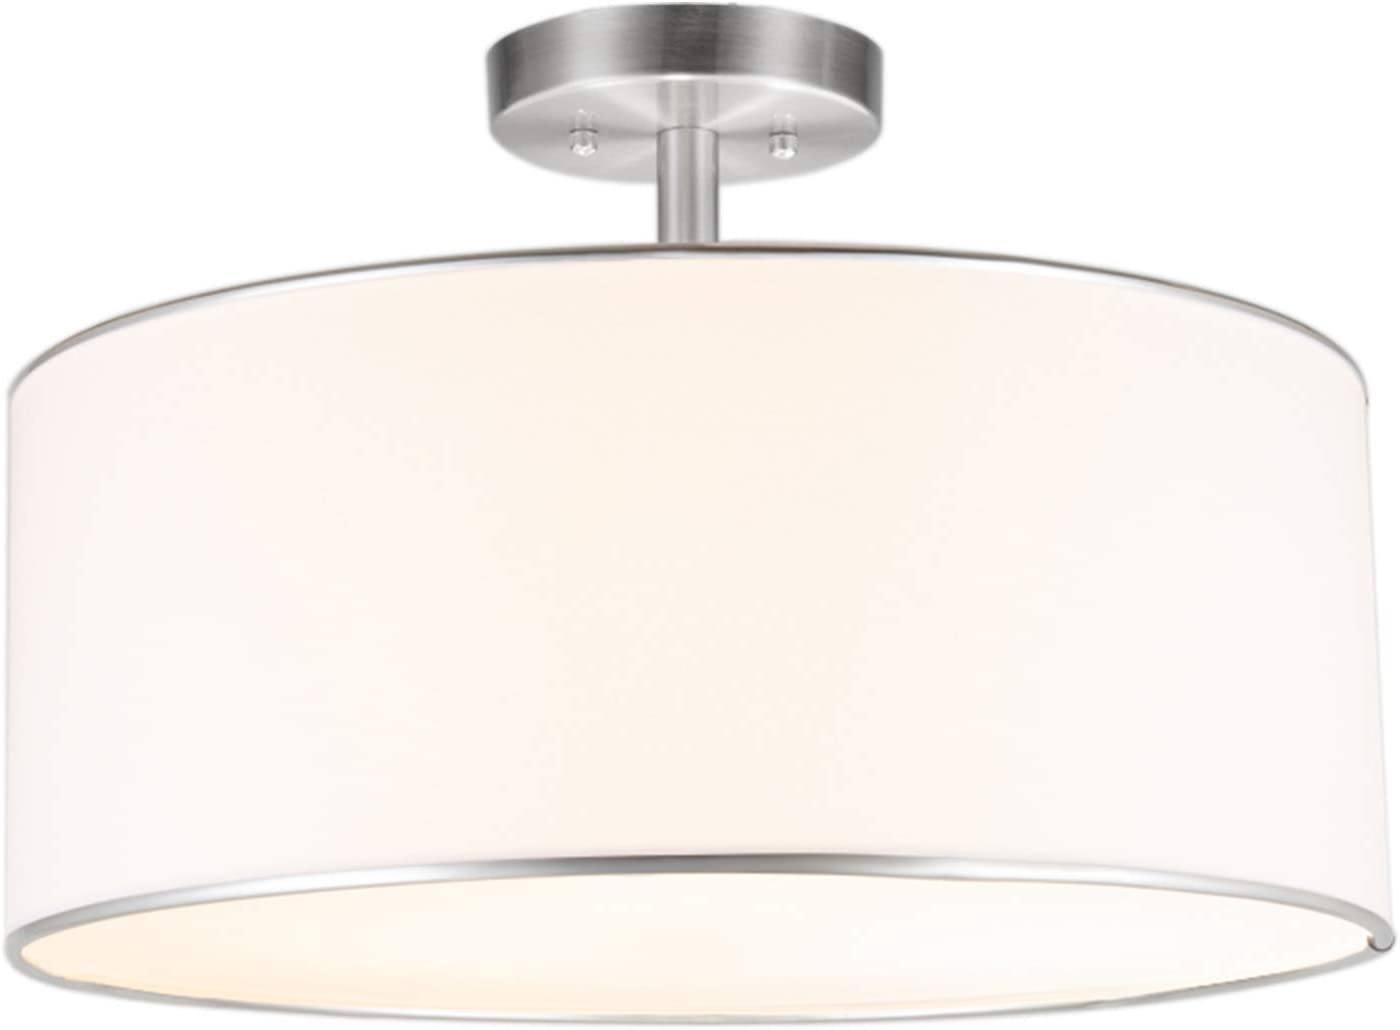 Amazon Com Co Z Drum Light 18 Brushed Nickel 3 Light Drum Chandelier Semi Flush Mount Contemporary Ceiling Lighting Fixture With Diffused Shade For Kitchen Hallway Dining Room Table Bedroom Bathroom Home Improvement